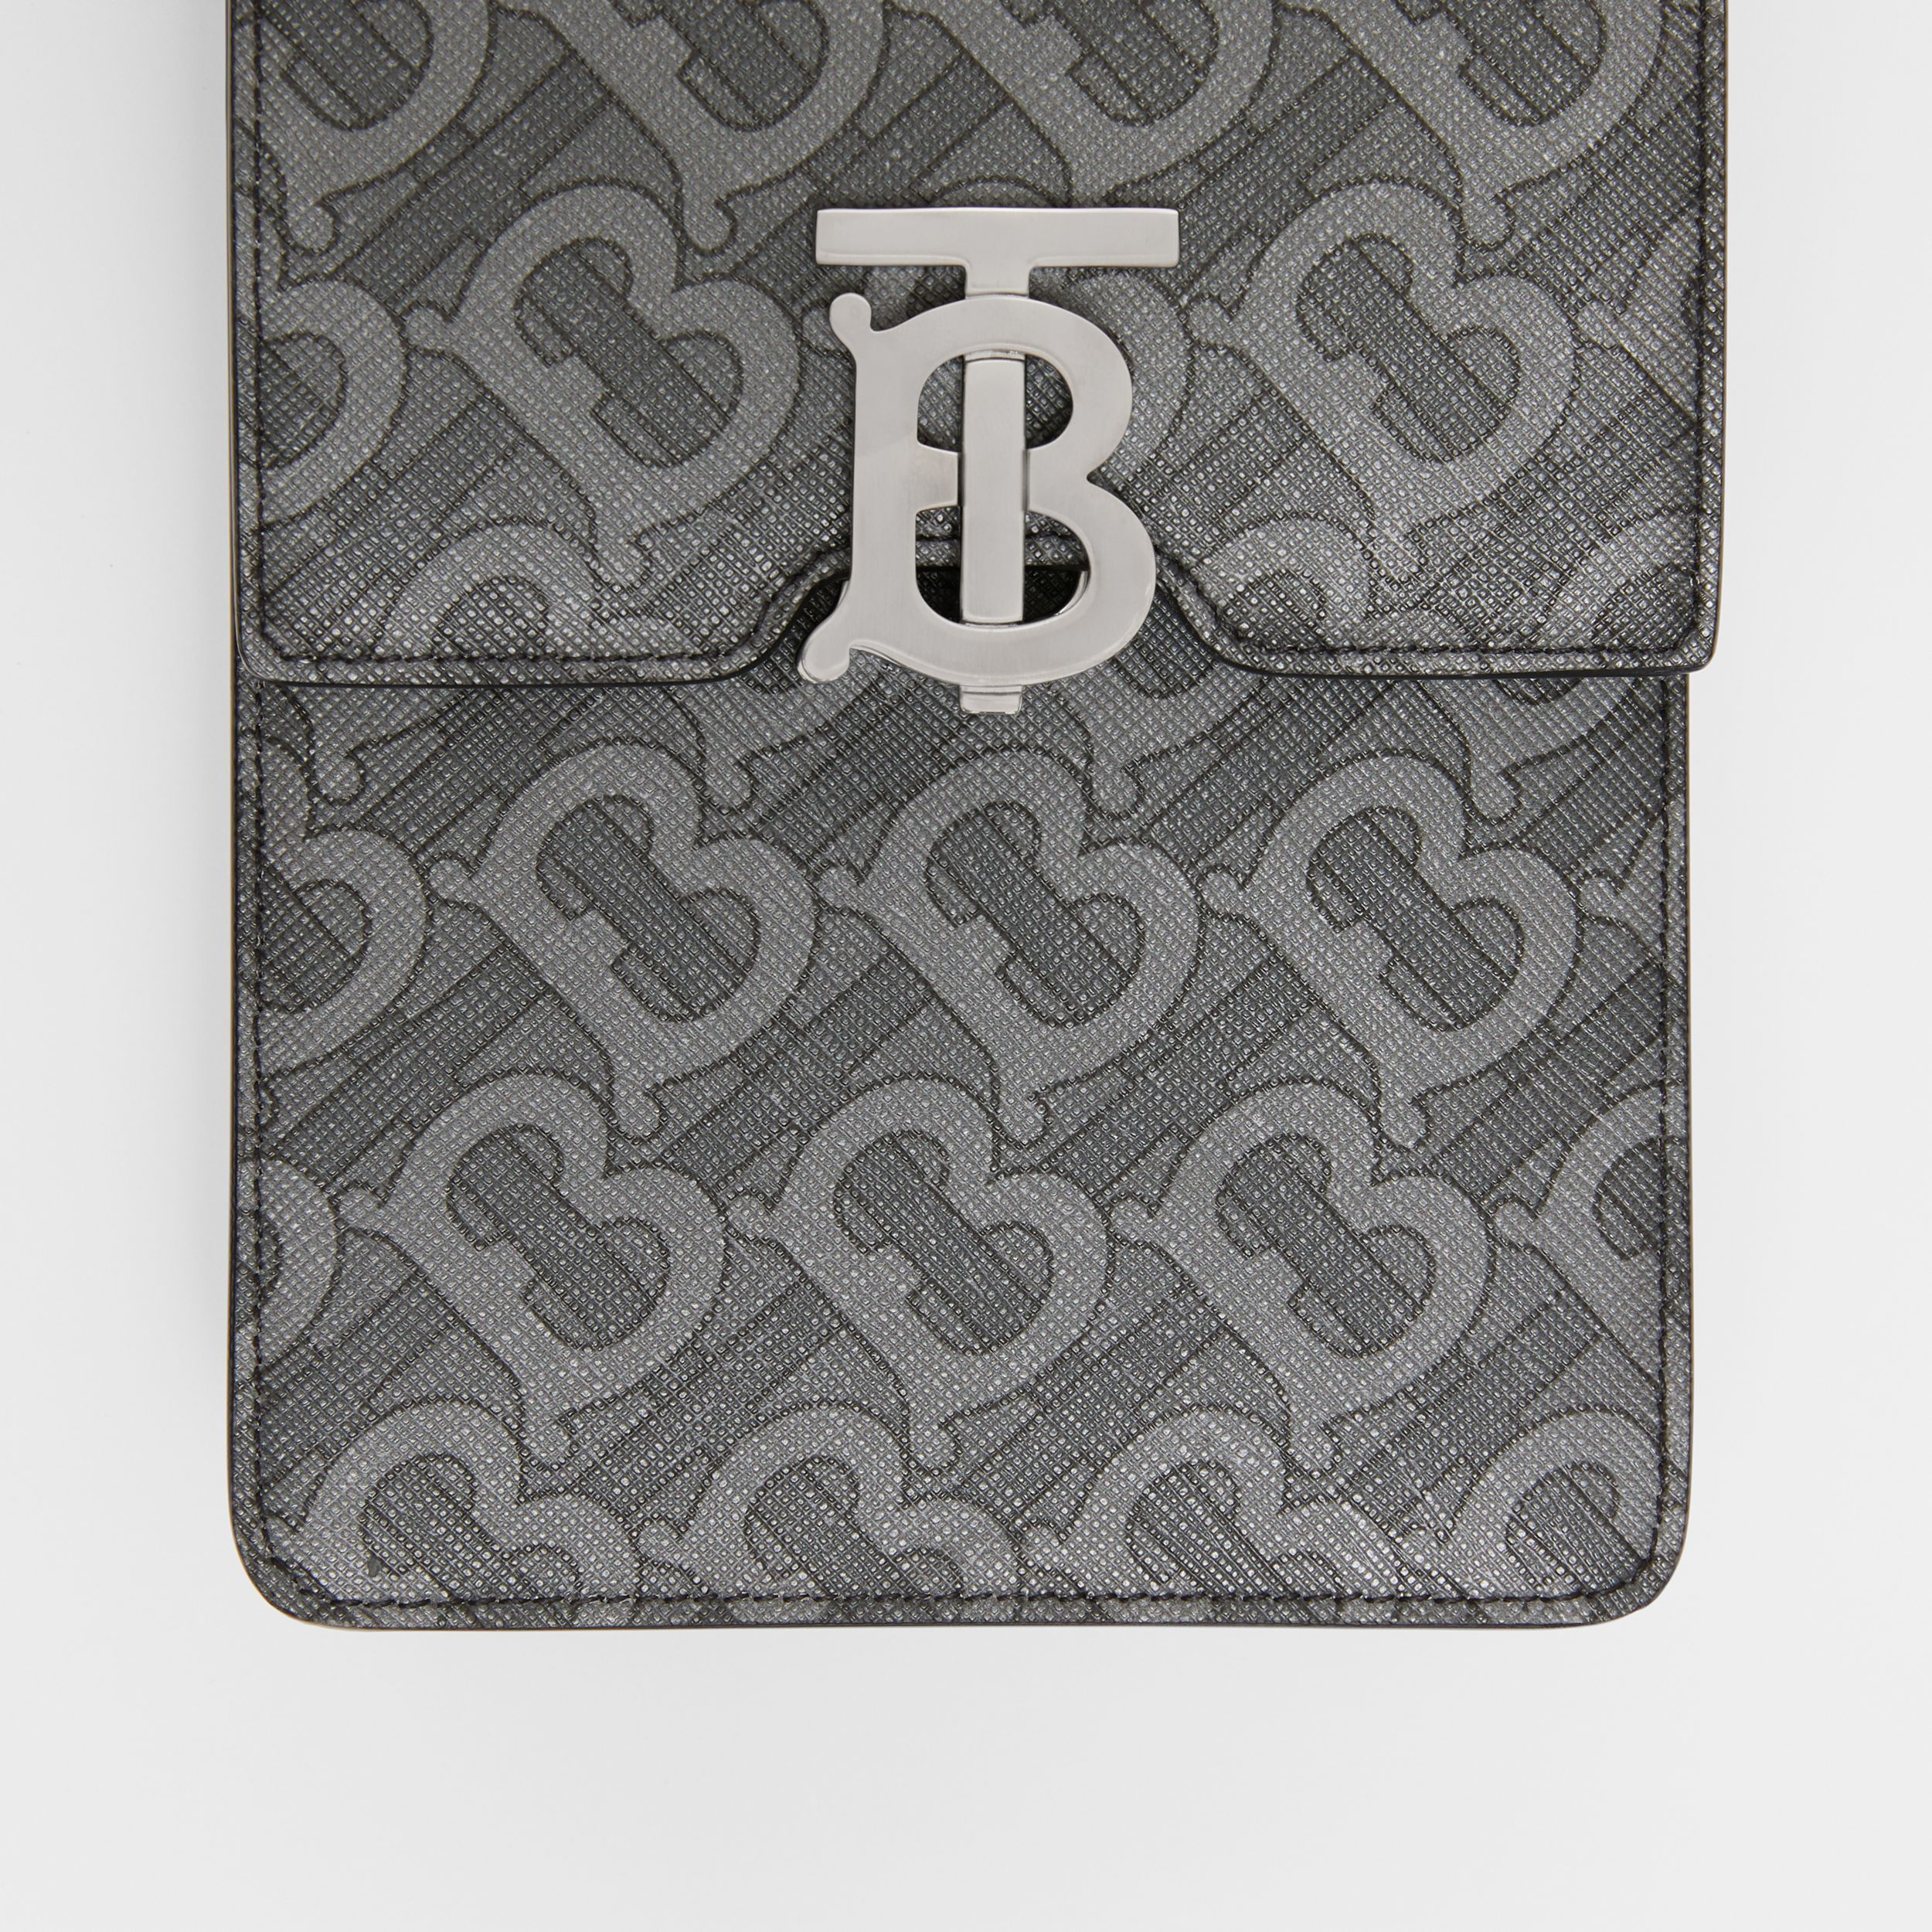 Monogram Print E-canvas Robin Bag in Charcoal/black - Men | Burberry - 2